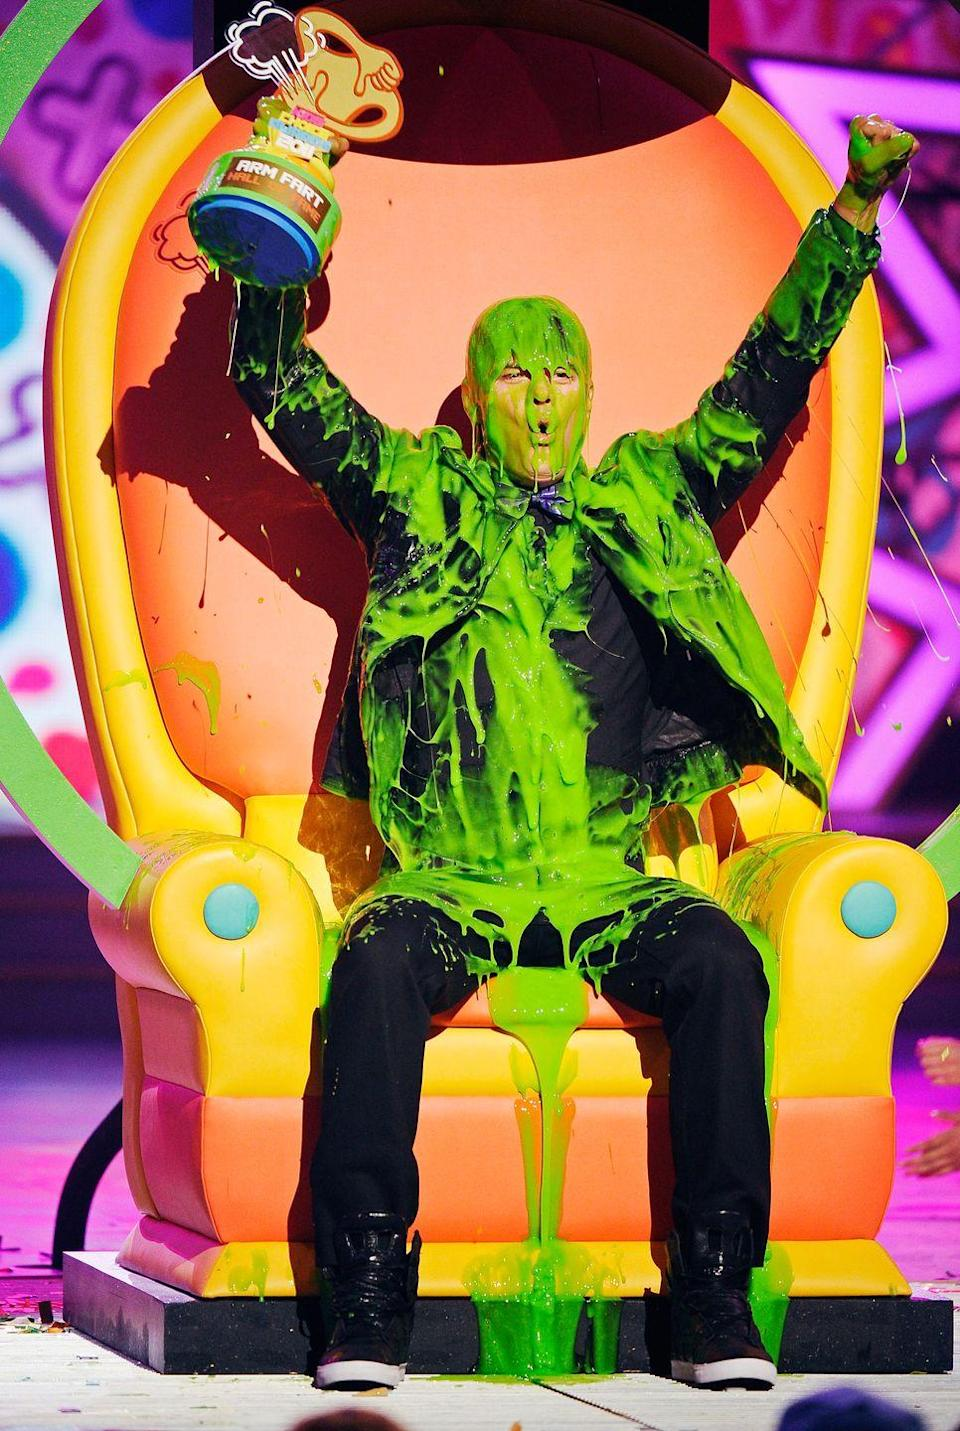 <p>I'm just gonna say it, dude looks like he's peeing slime. </p>